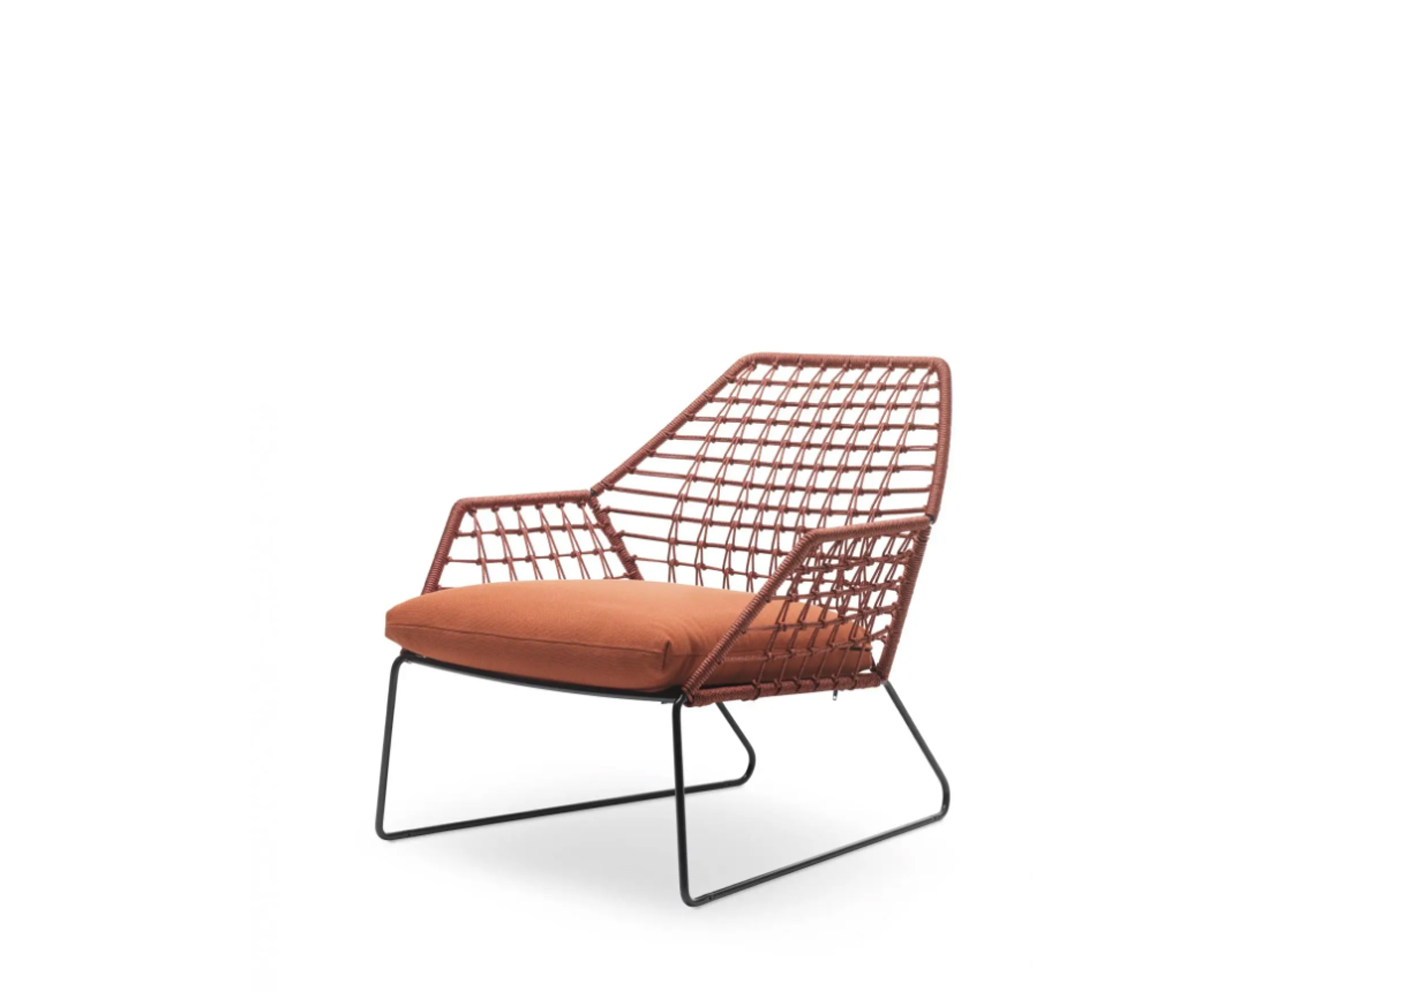 In a choice of six colours, woven polyethylene cord also gives Saba Italia's New York Soleil chair its laid-back charm. The tubular metal frame is specially treated for outdoor use while cushions are covered in quick-drying, non-absorbent fabric with removable outer cushion covers in 13 different shades.